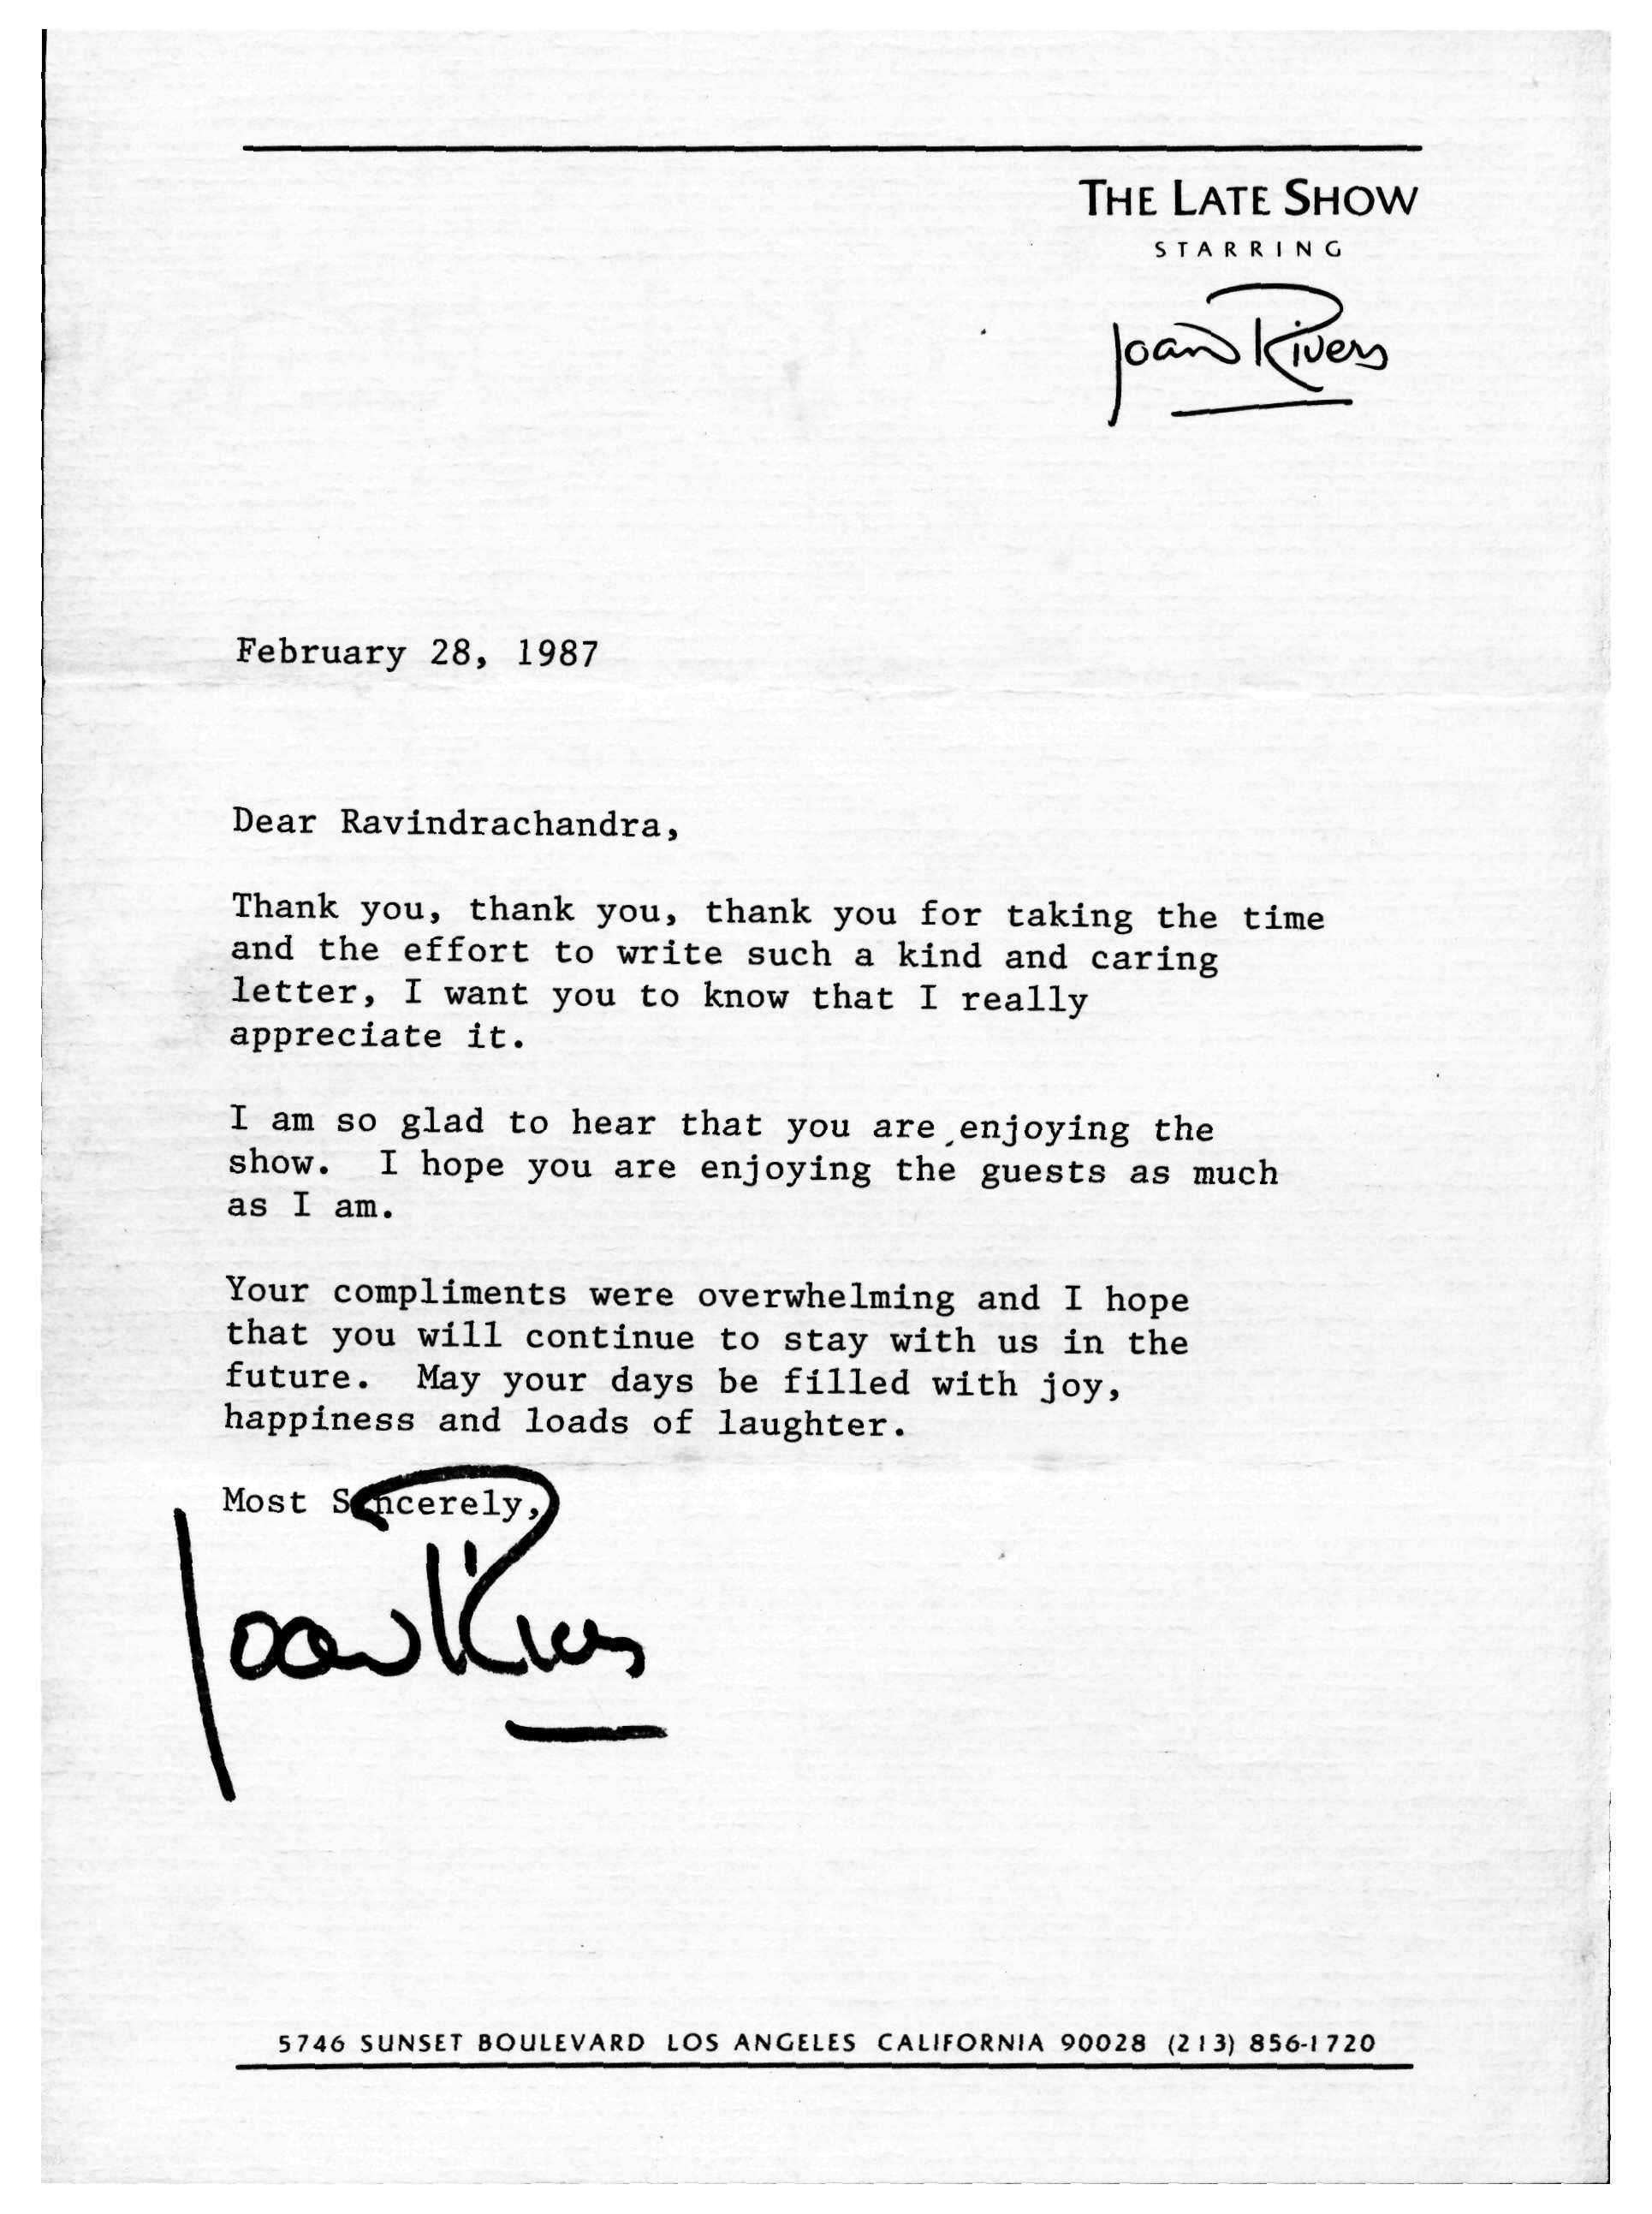 theravireport the ravi report joan rivers responded to my letter in 1987 about her talk show